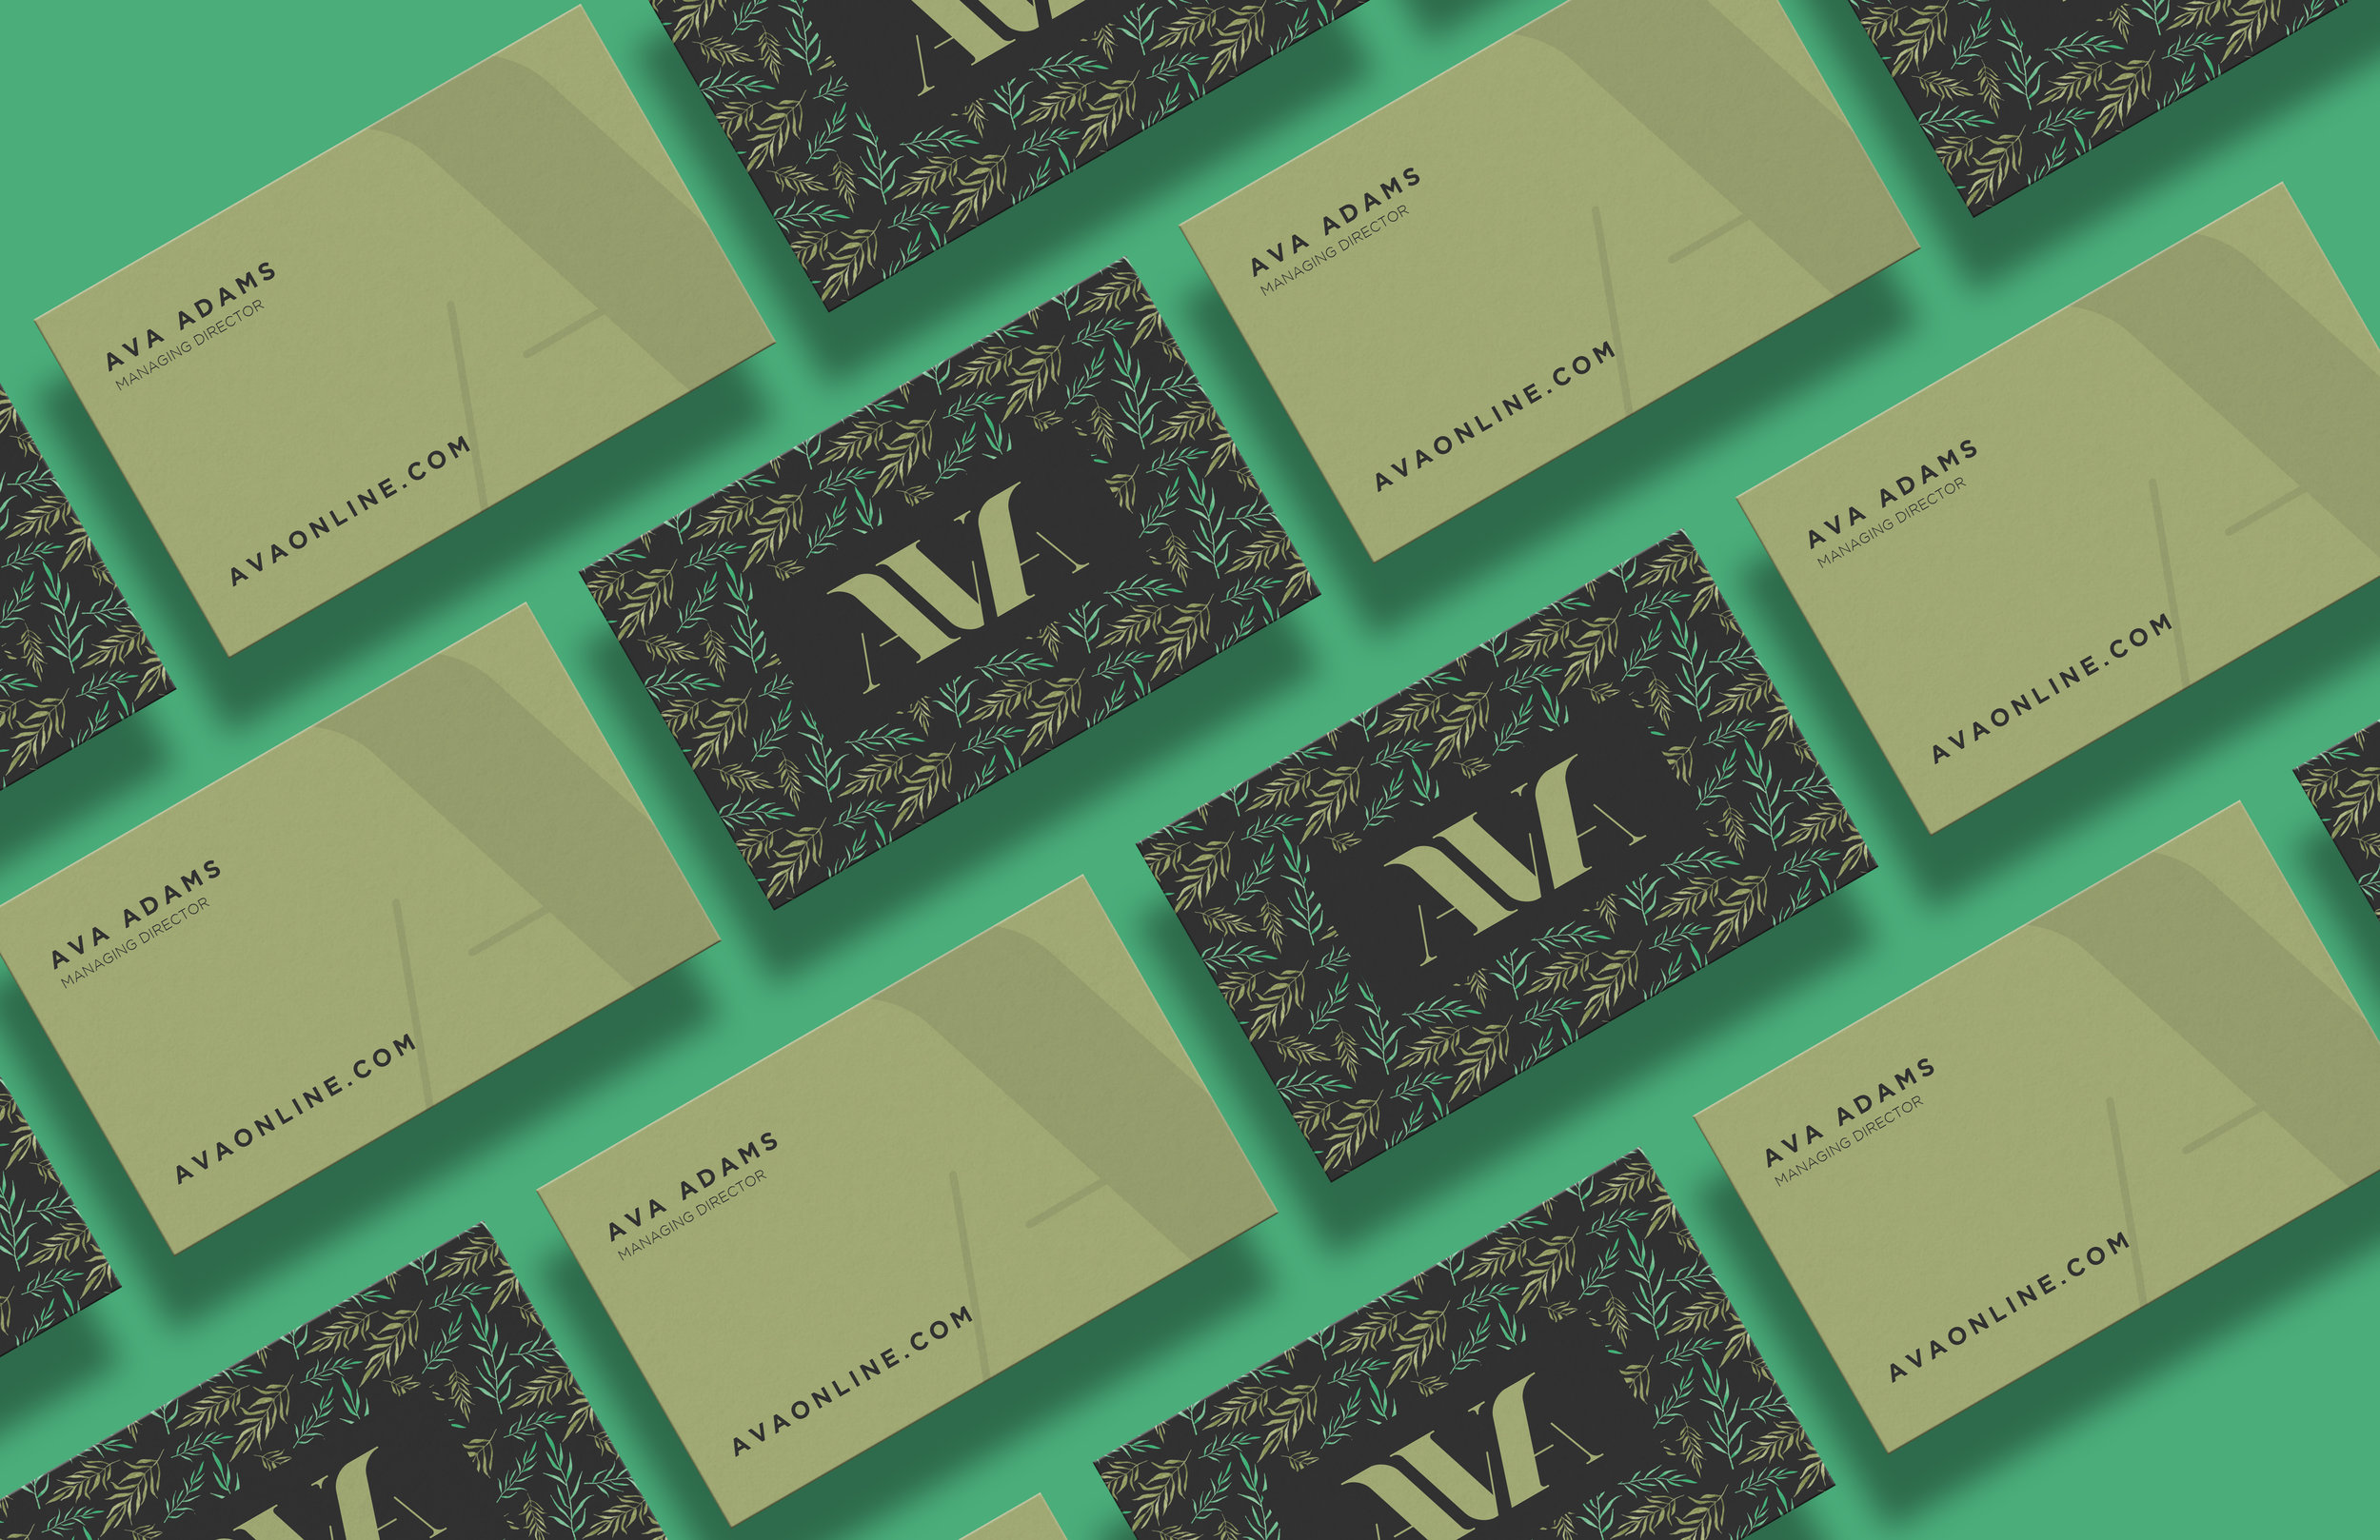 BUSINESS CARDS_TOP VIEW ANGLE-ava.jpg